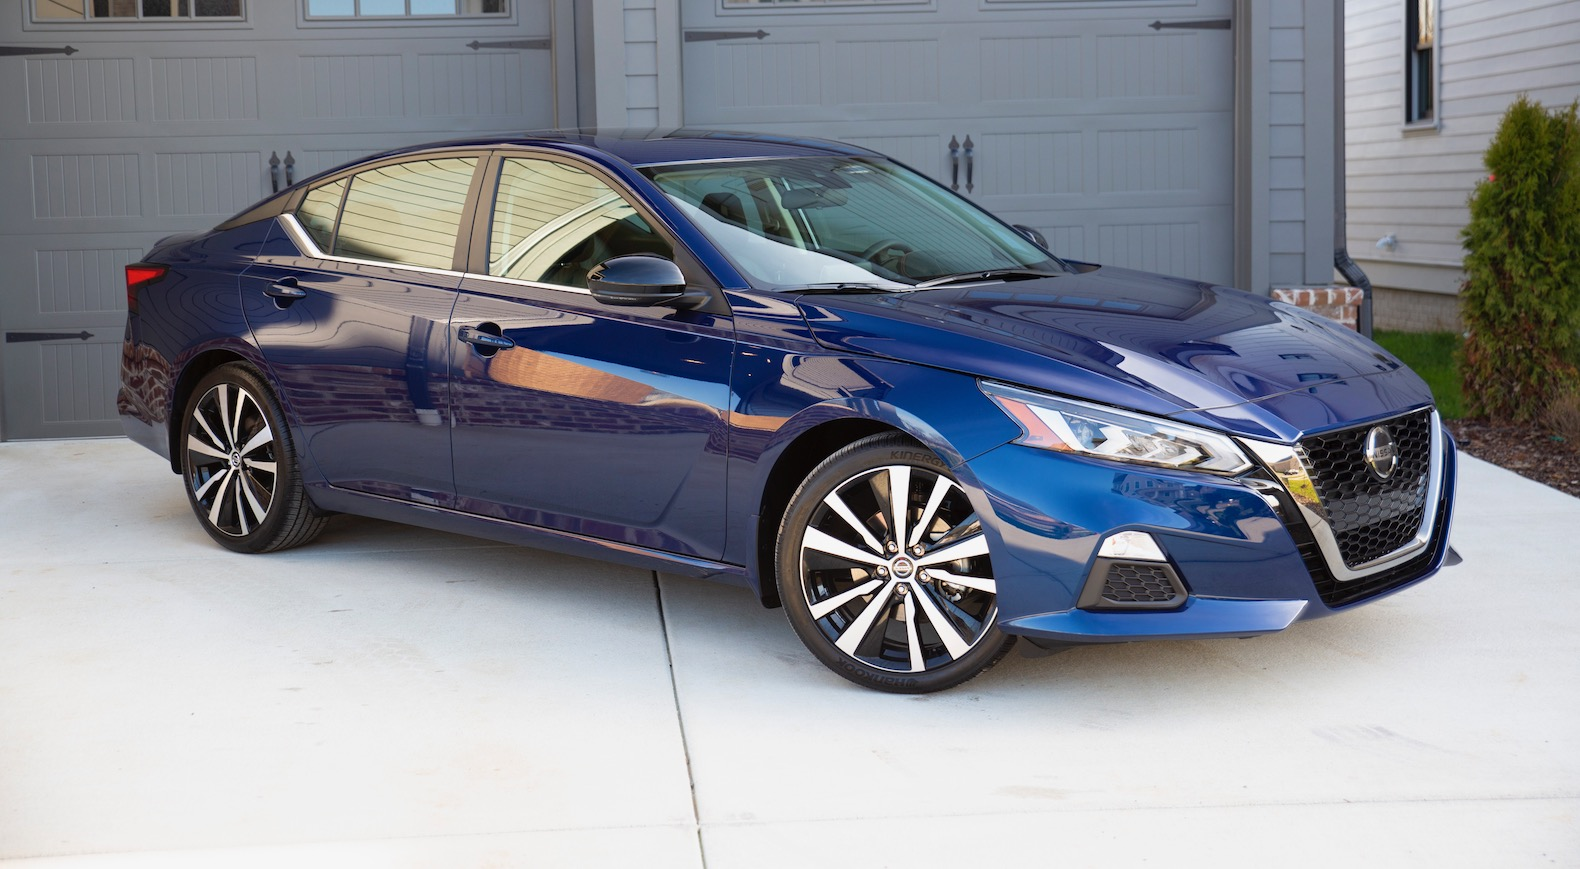 2021 nissan altima starts at $25,225 | the torque report